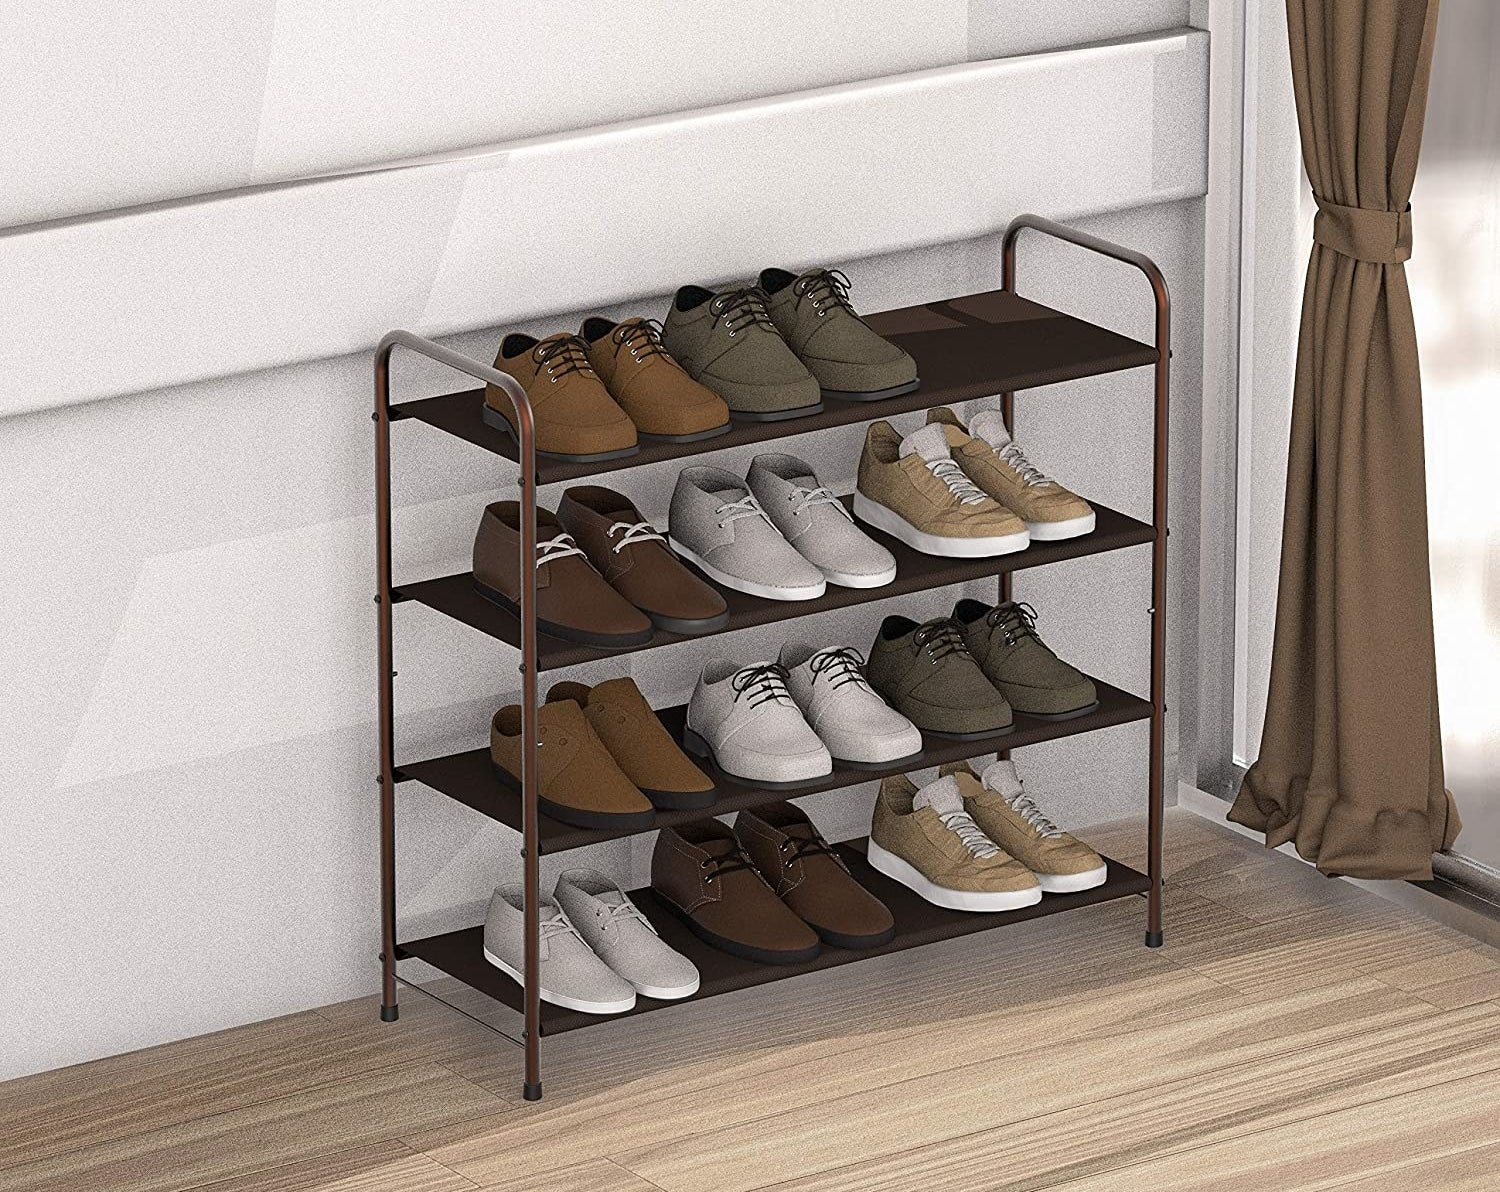 A four-tier rack with 12 pairs of shoes on it